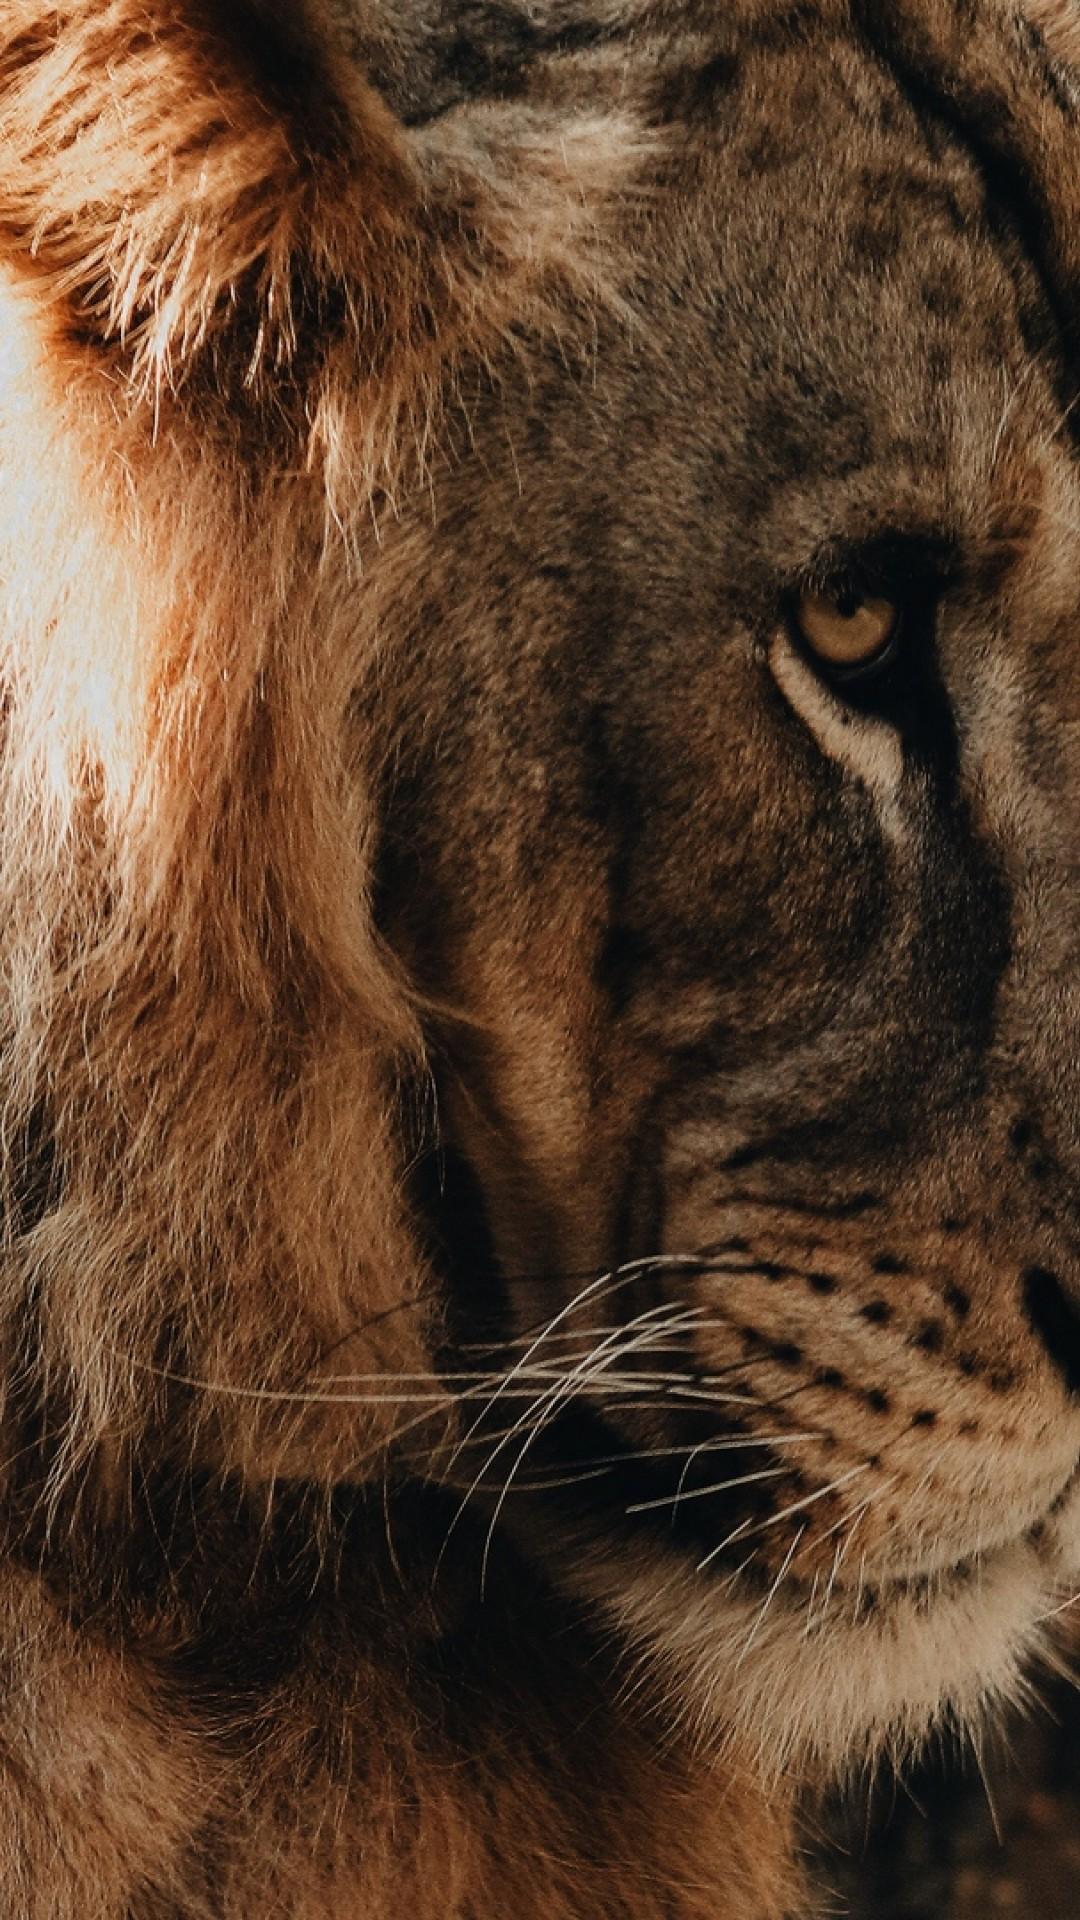 Lion Hd Wallpaper Iphone 6 , HD Wallpaper & Backgrounds